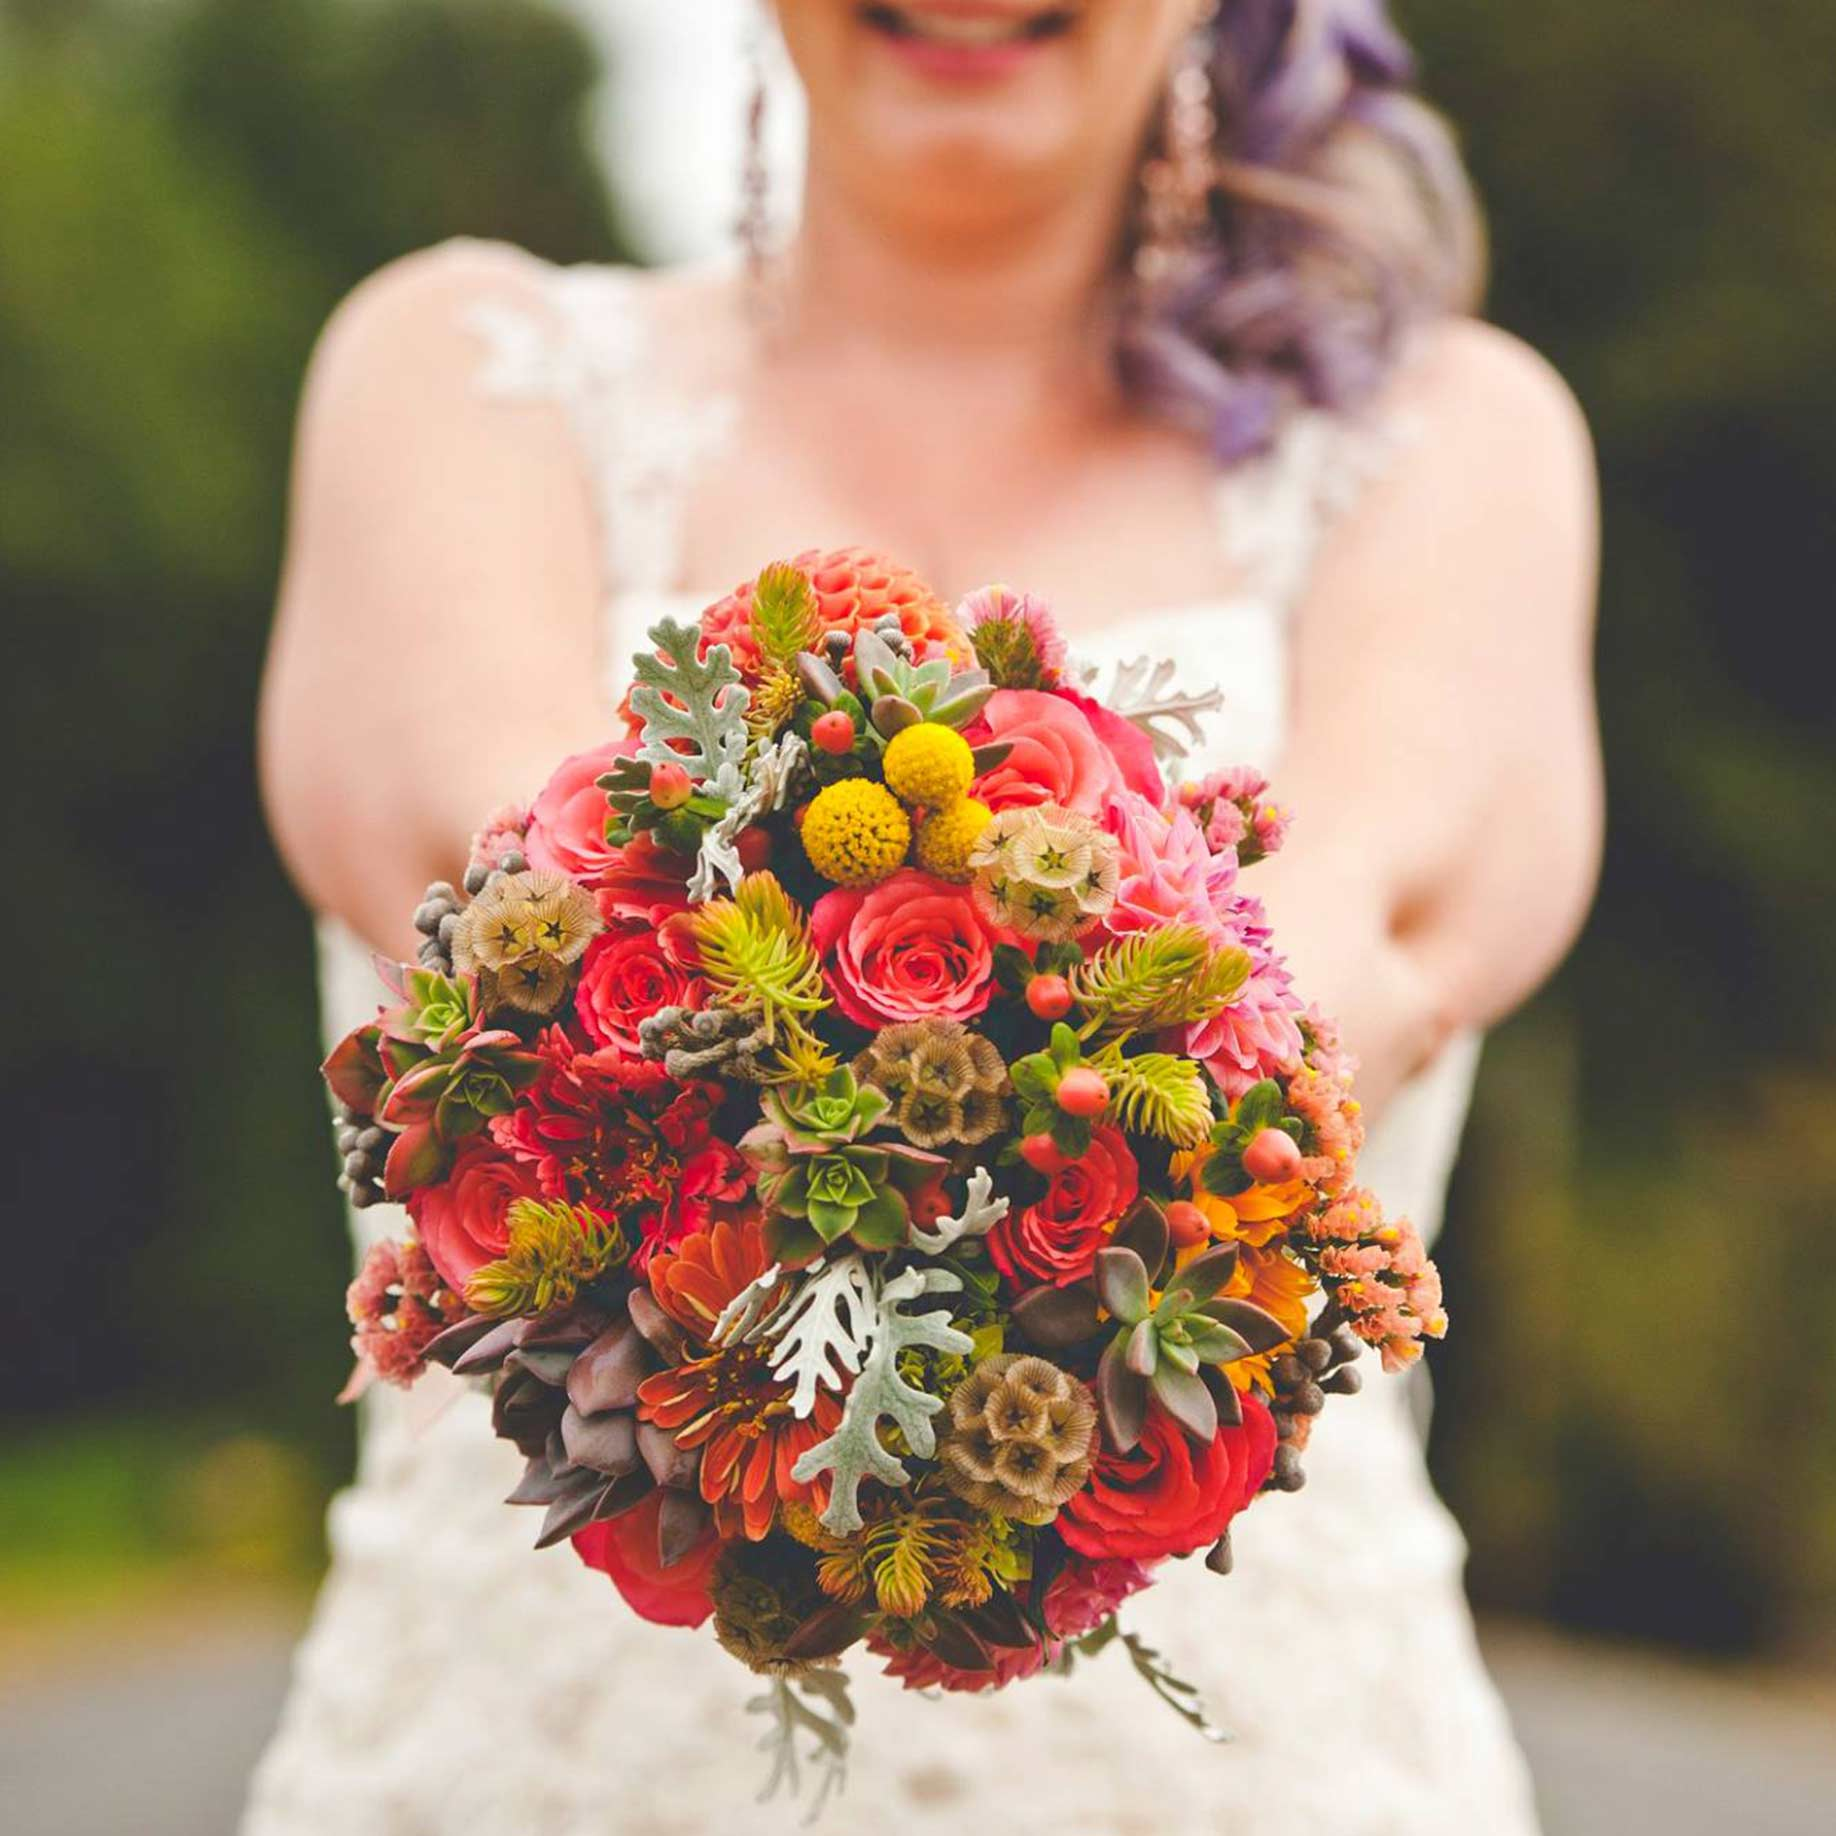 Bridal & Bridesmaid Bouquets - For every season